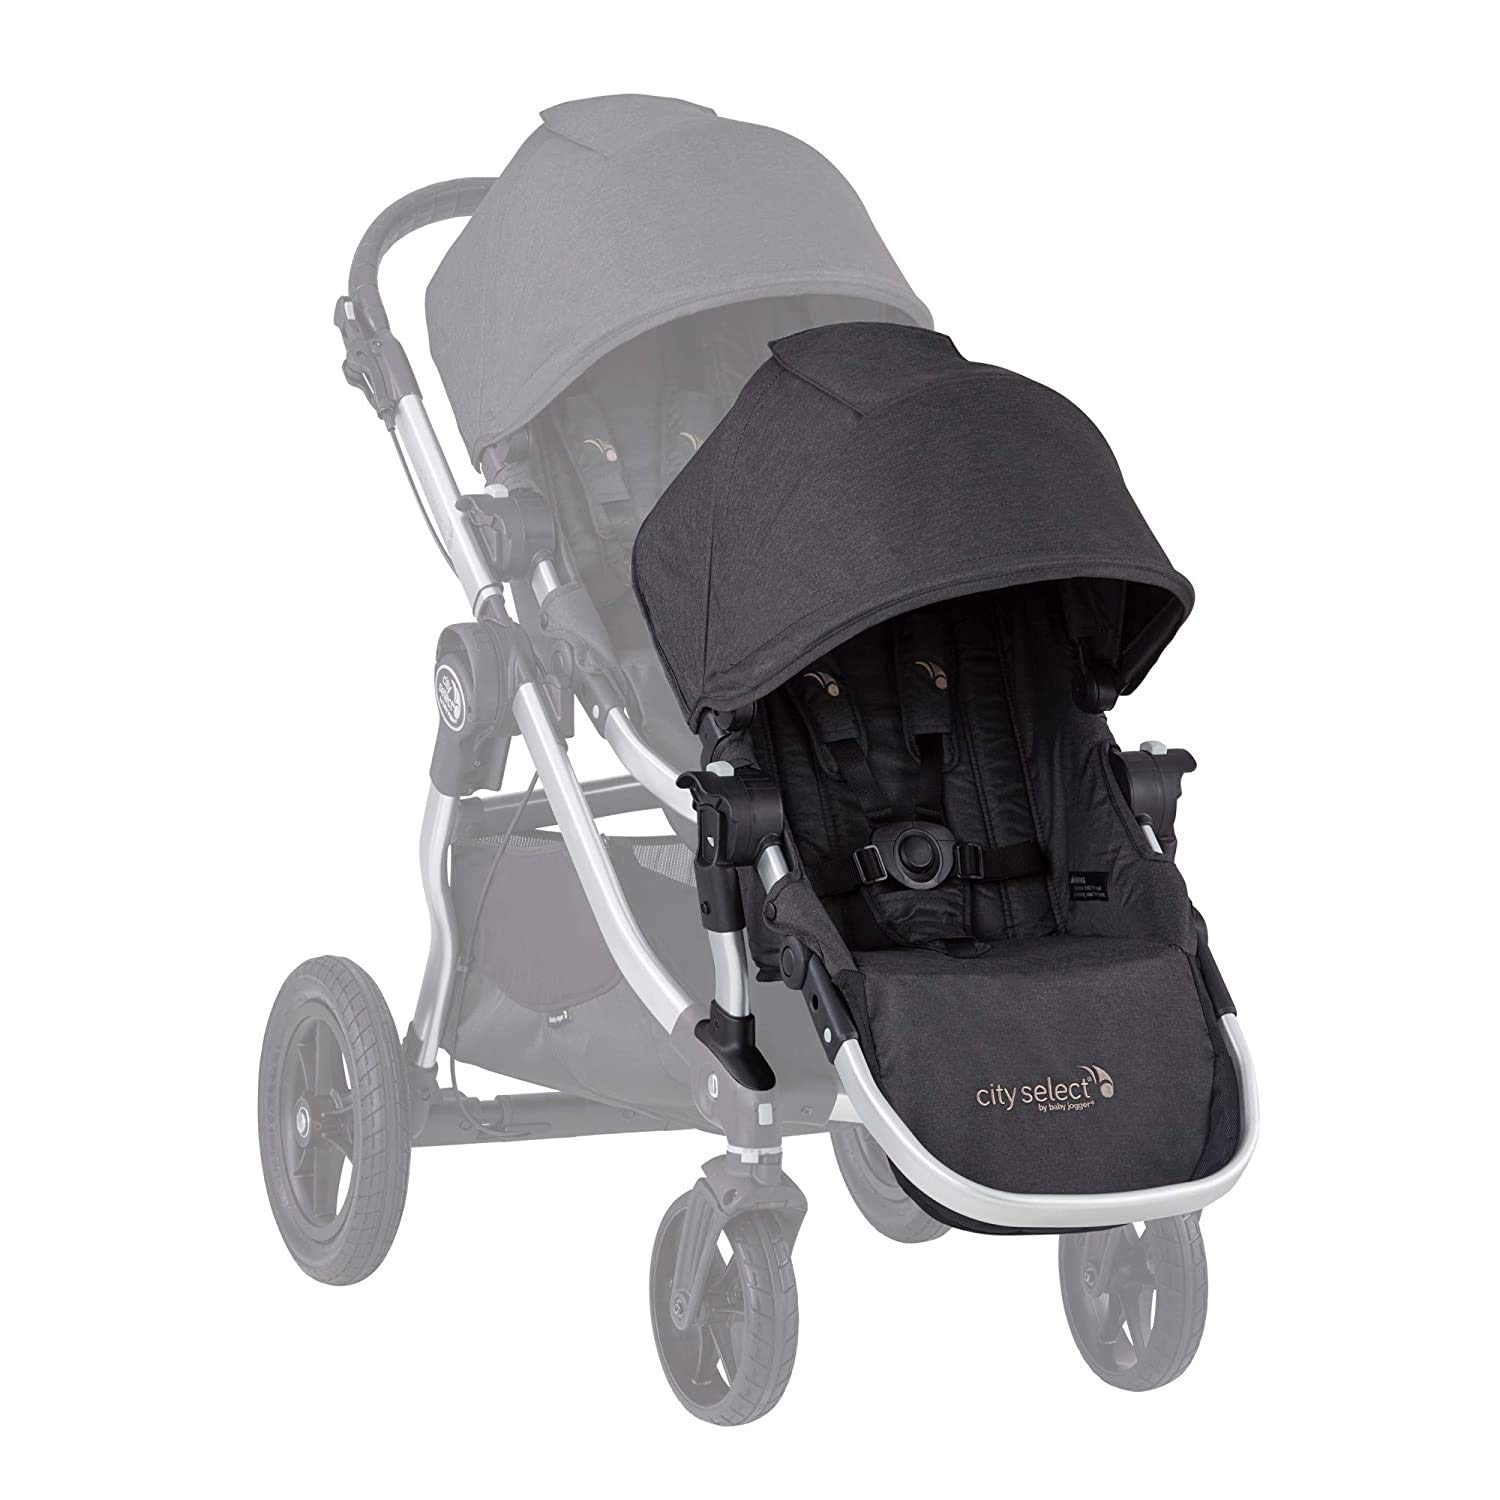 Baby Jogger Second Seat Kit for City Select Stroller, Jet